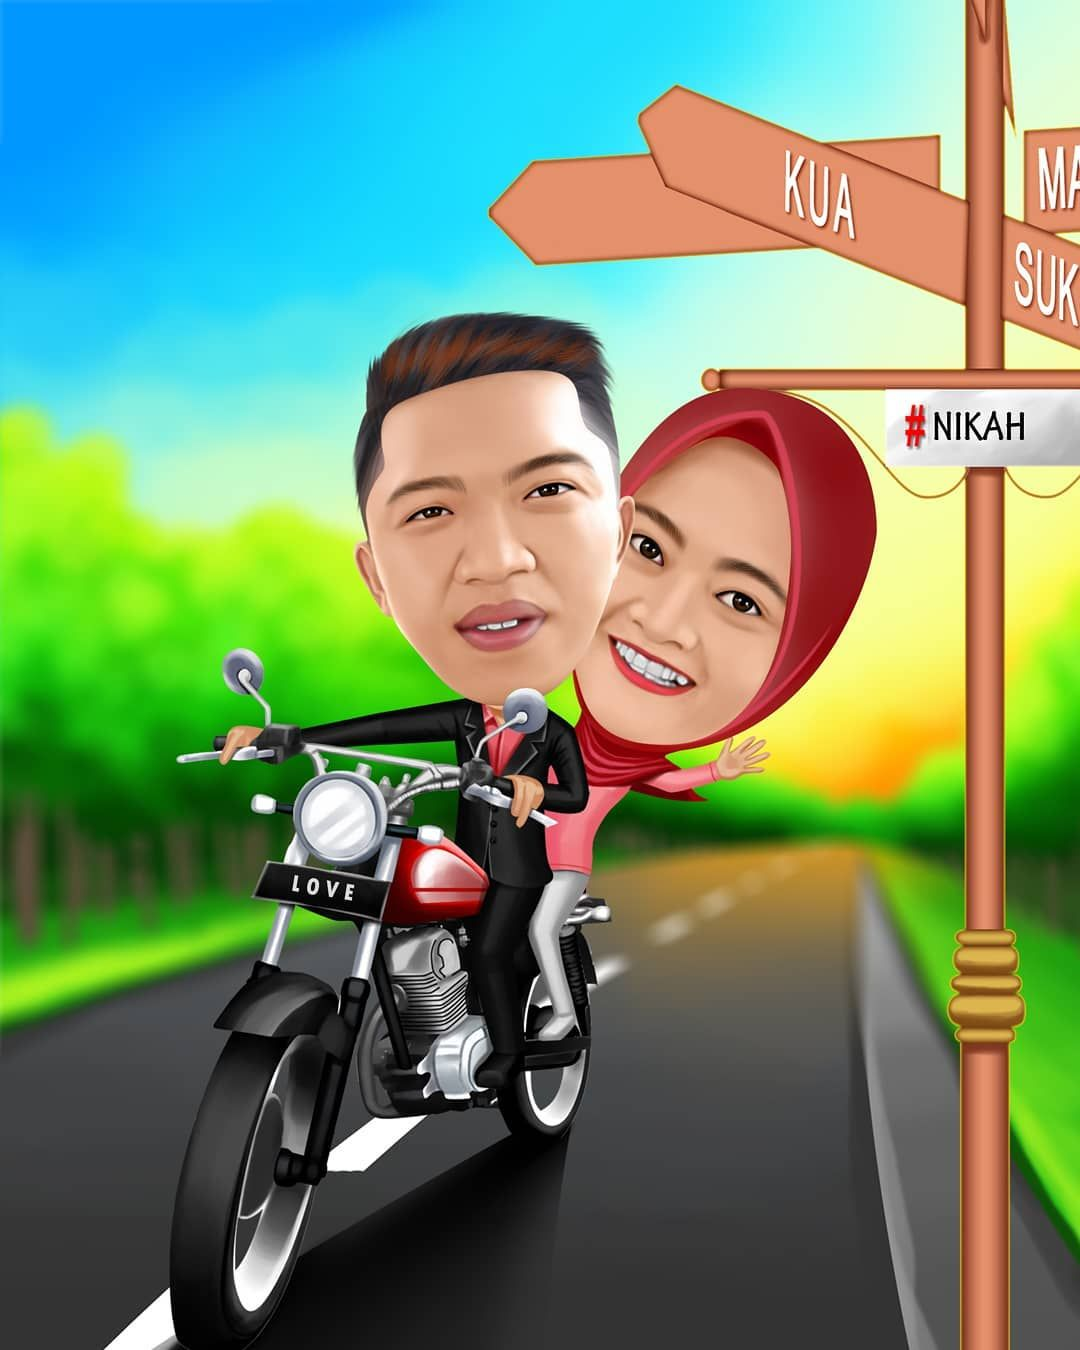 Pin By Bangtoyib On Karikatur Caricature Cartoon Pictures